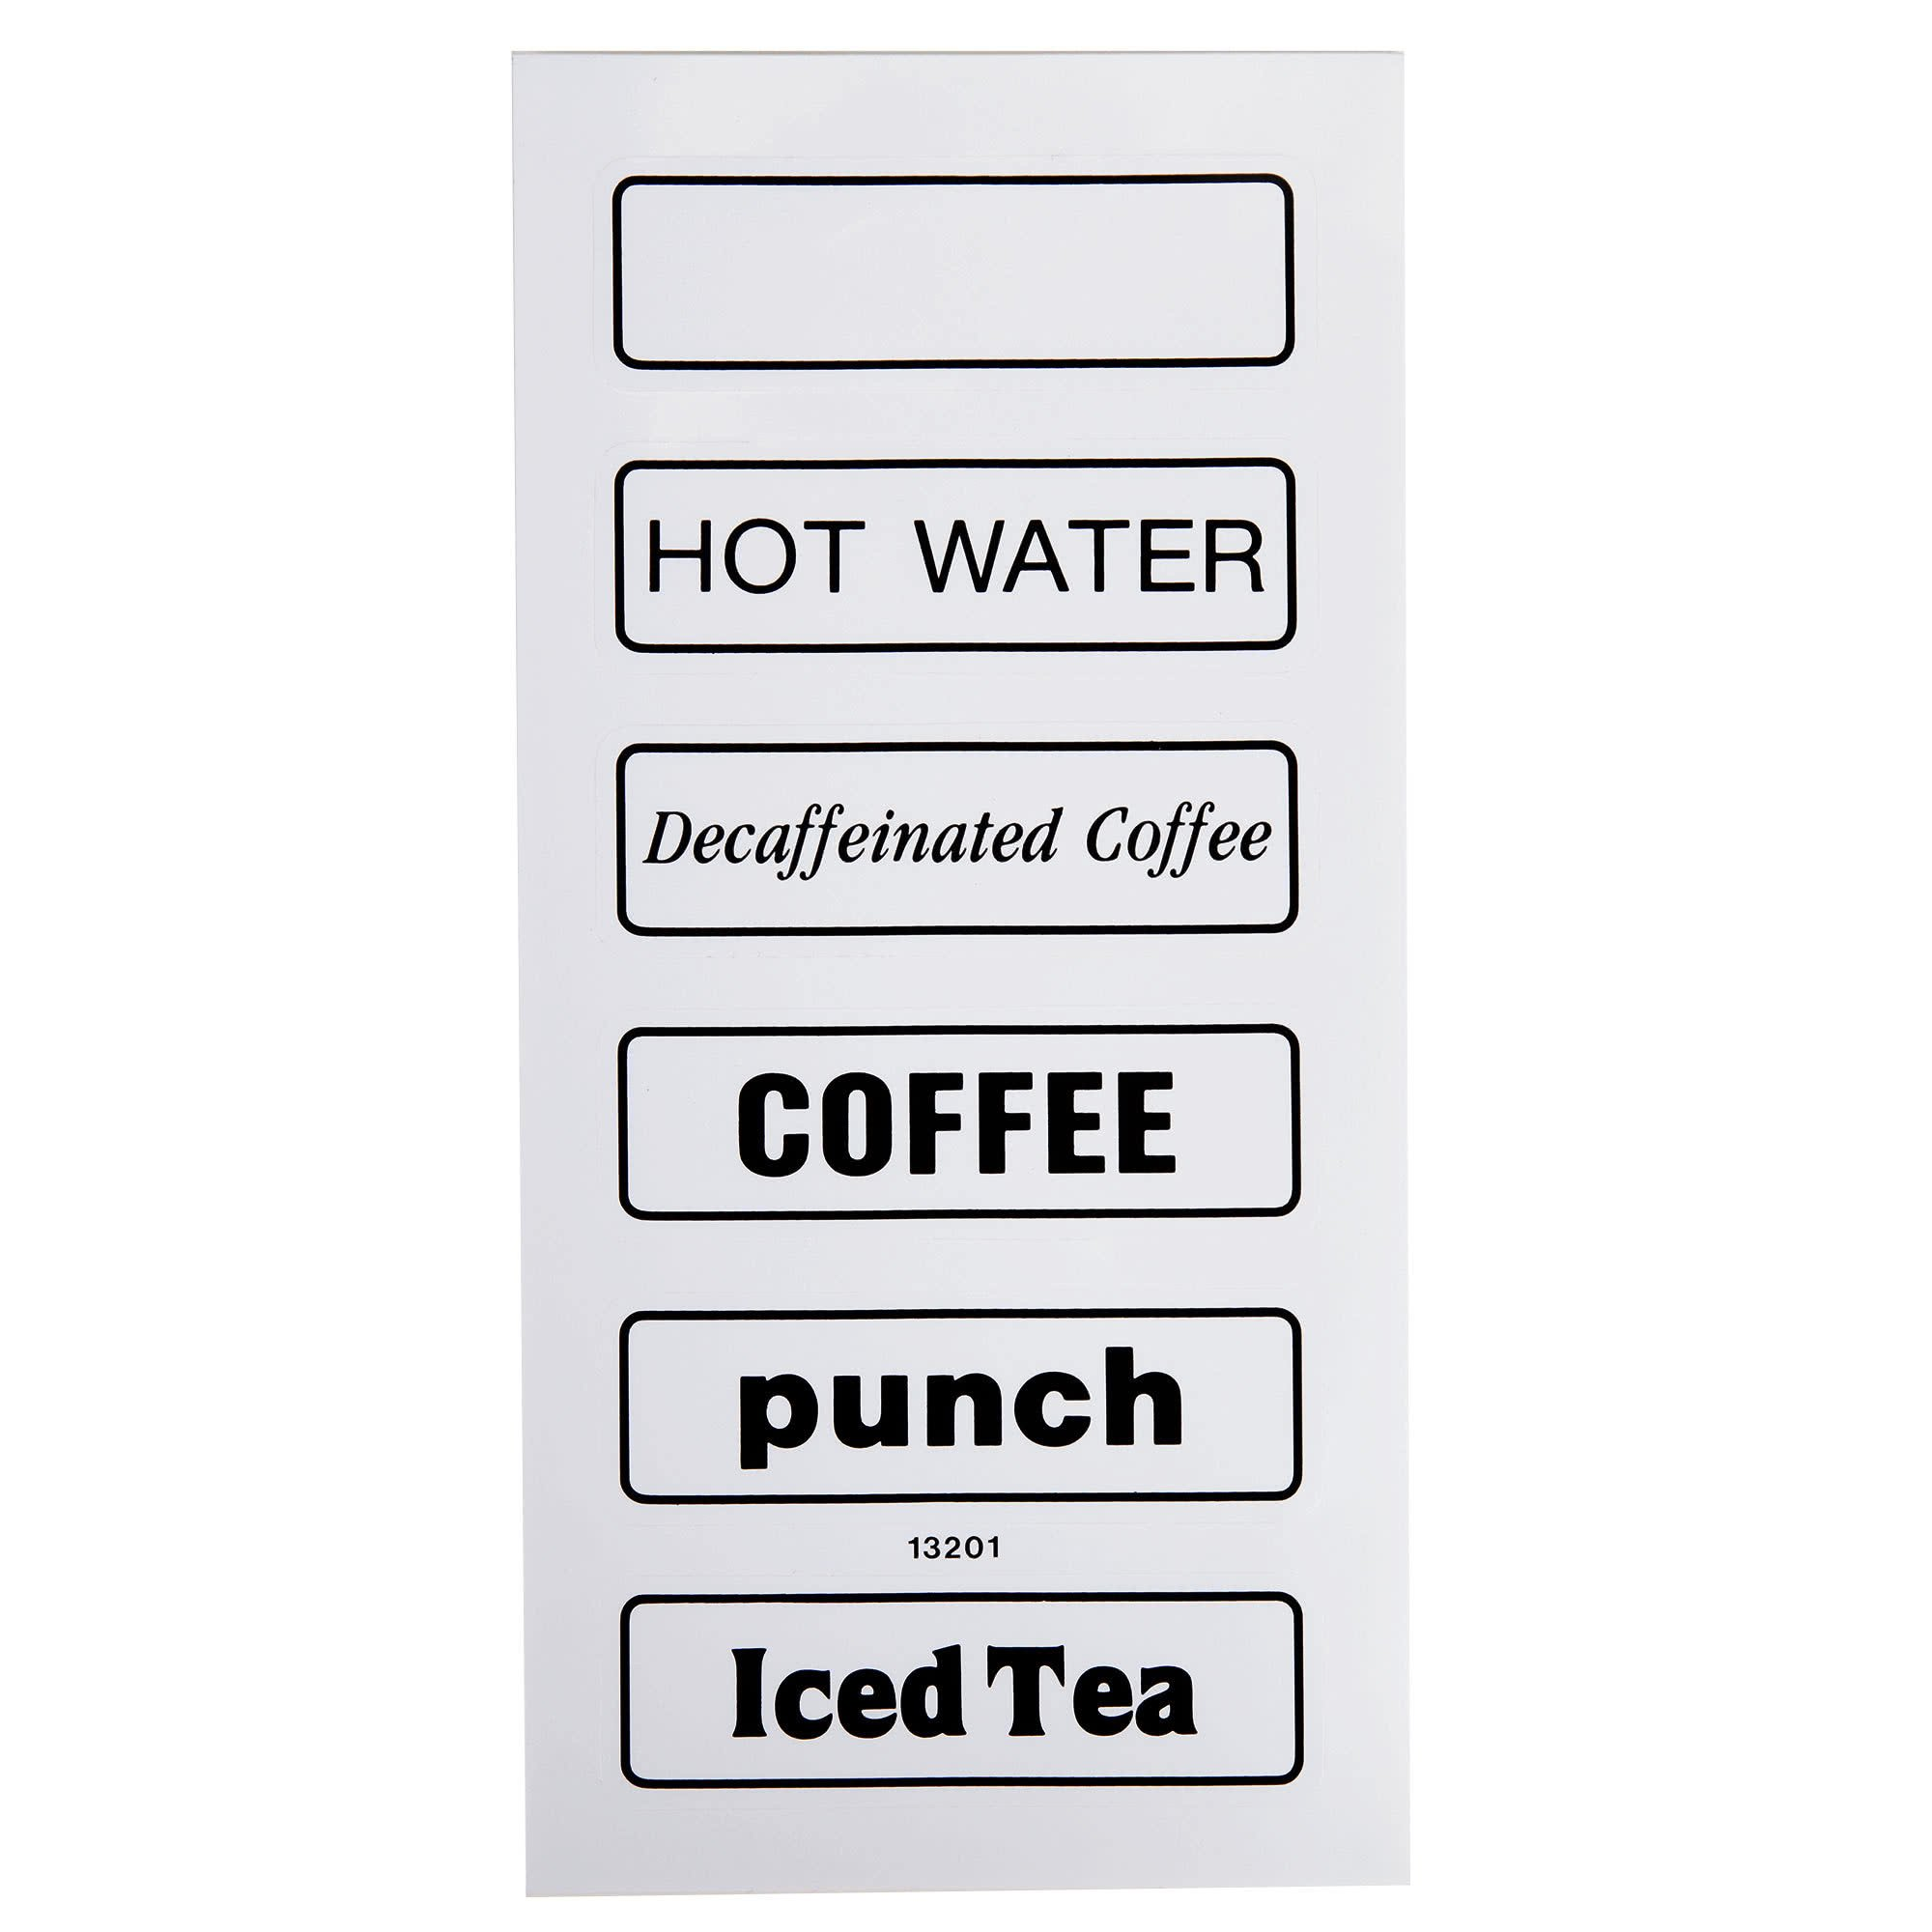 TableTop King 13201 Small Label Set for Beverage Dispensers - 6/Set